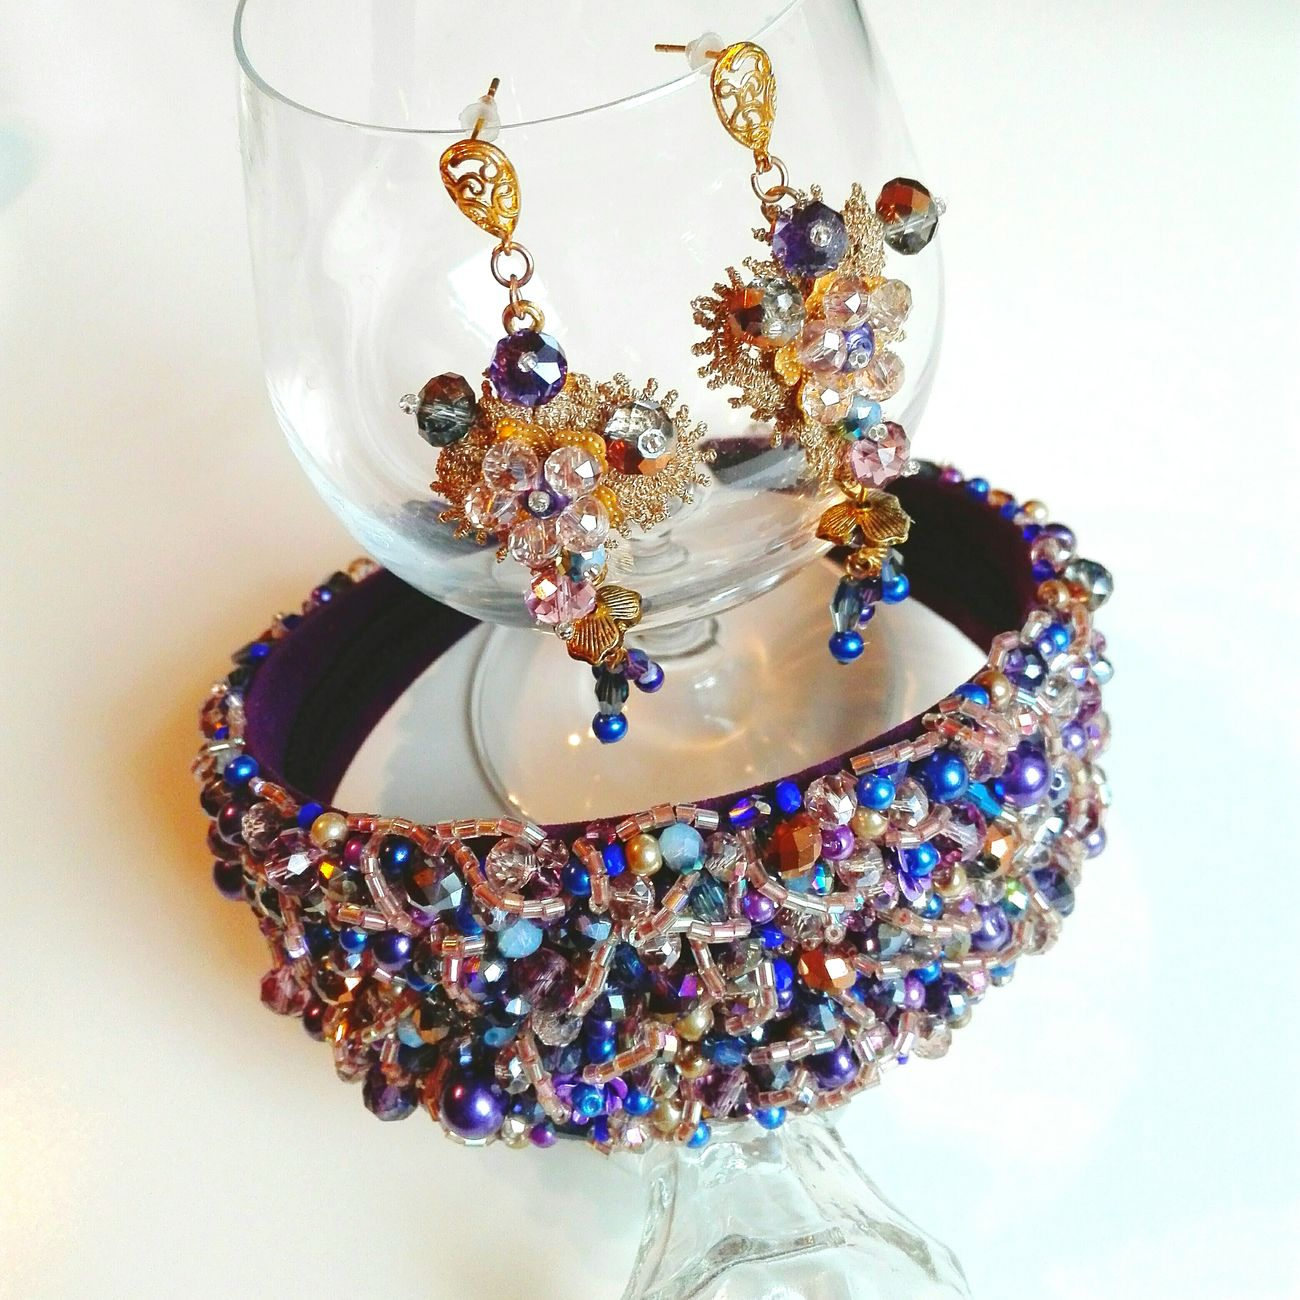 Jewelry Fashion Luxury Handmade Glamour Handmade Jewellery Princess Accesories Accessory Accesorize Handmade Accessories